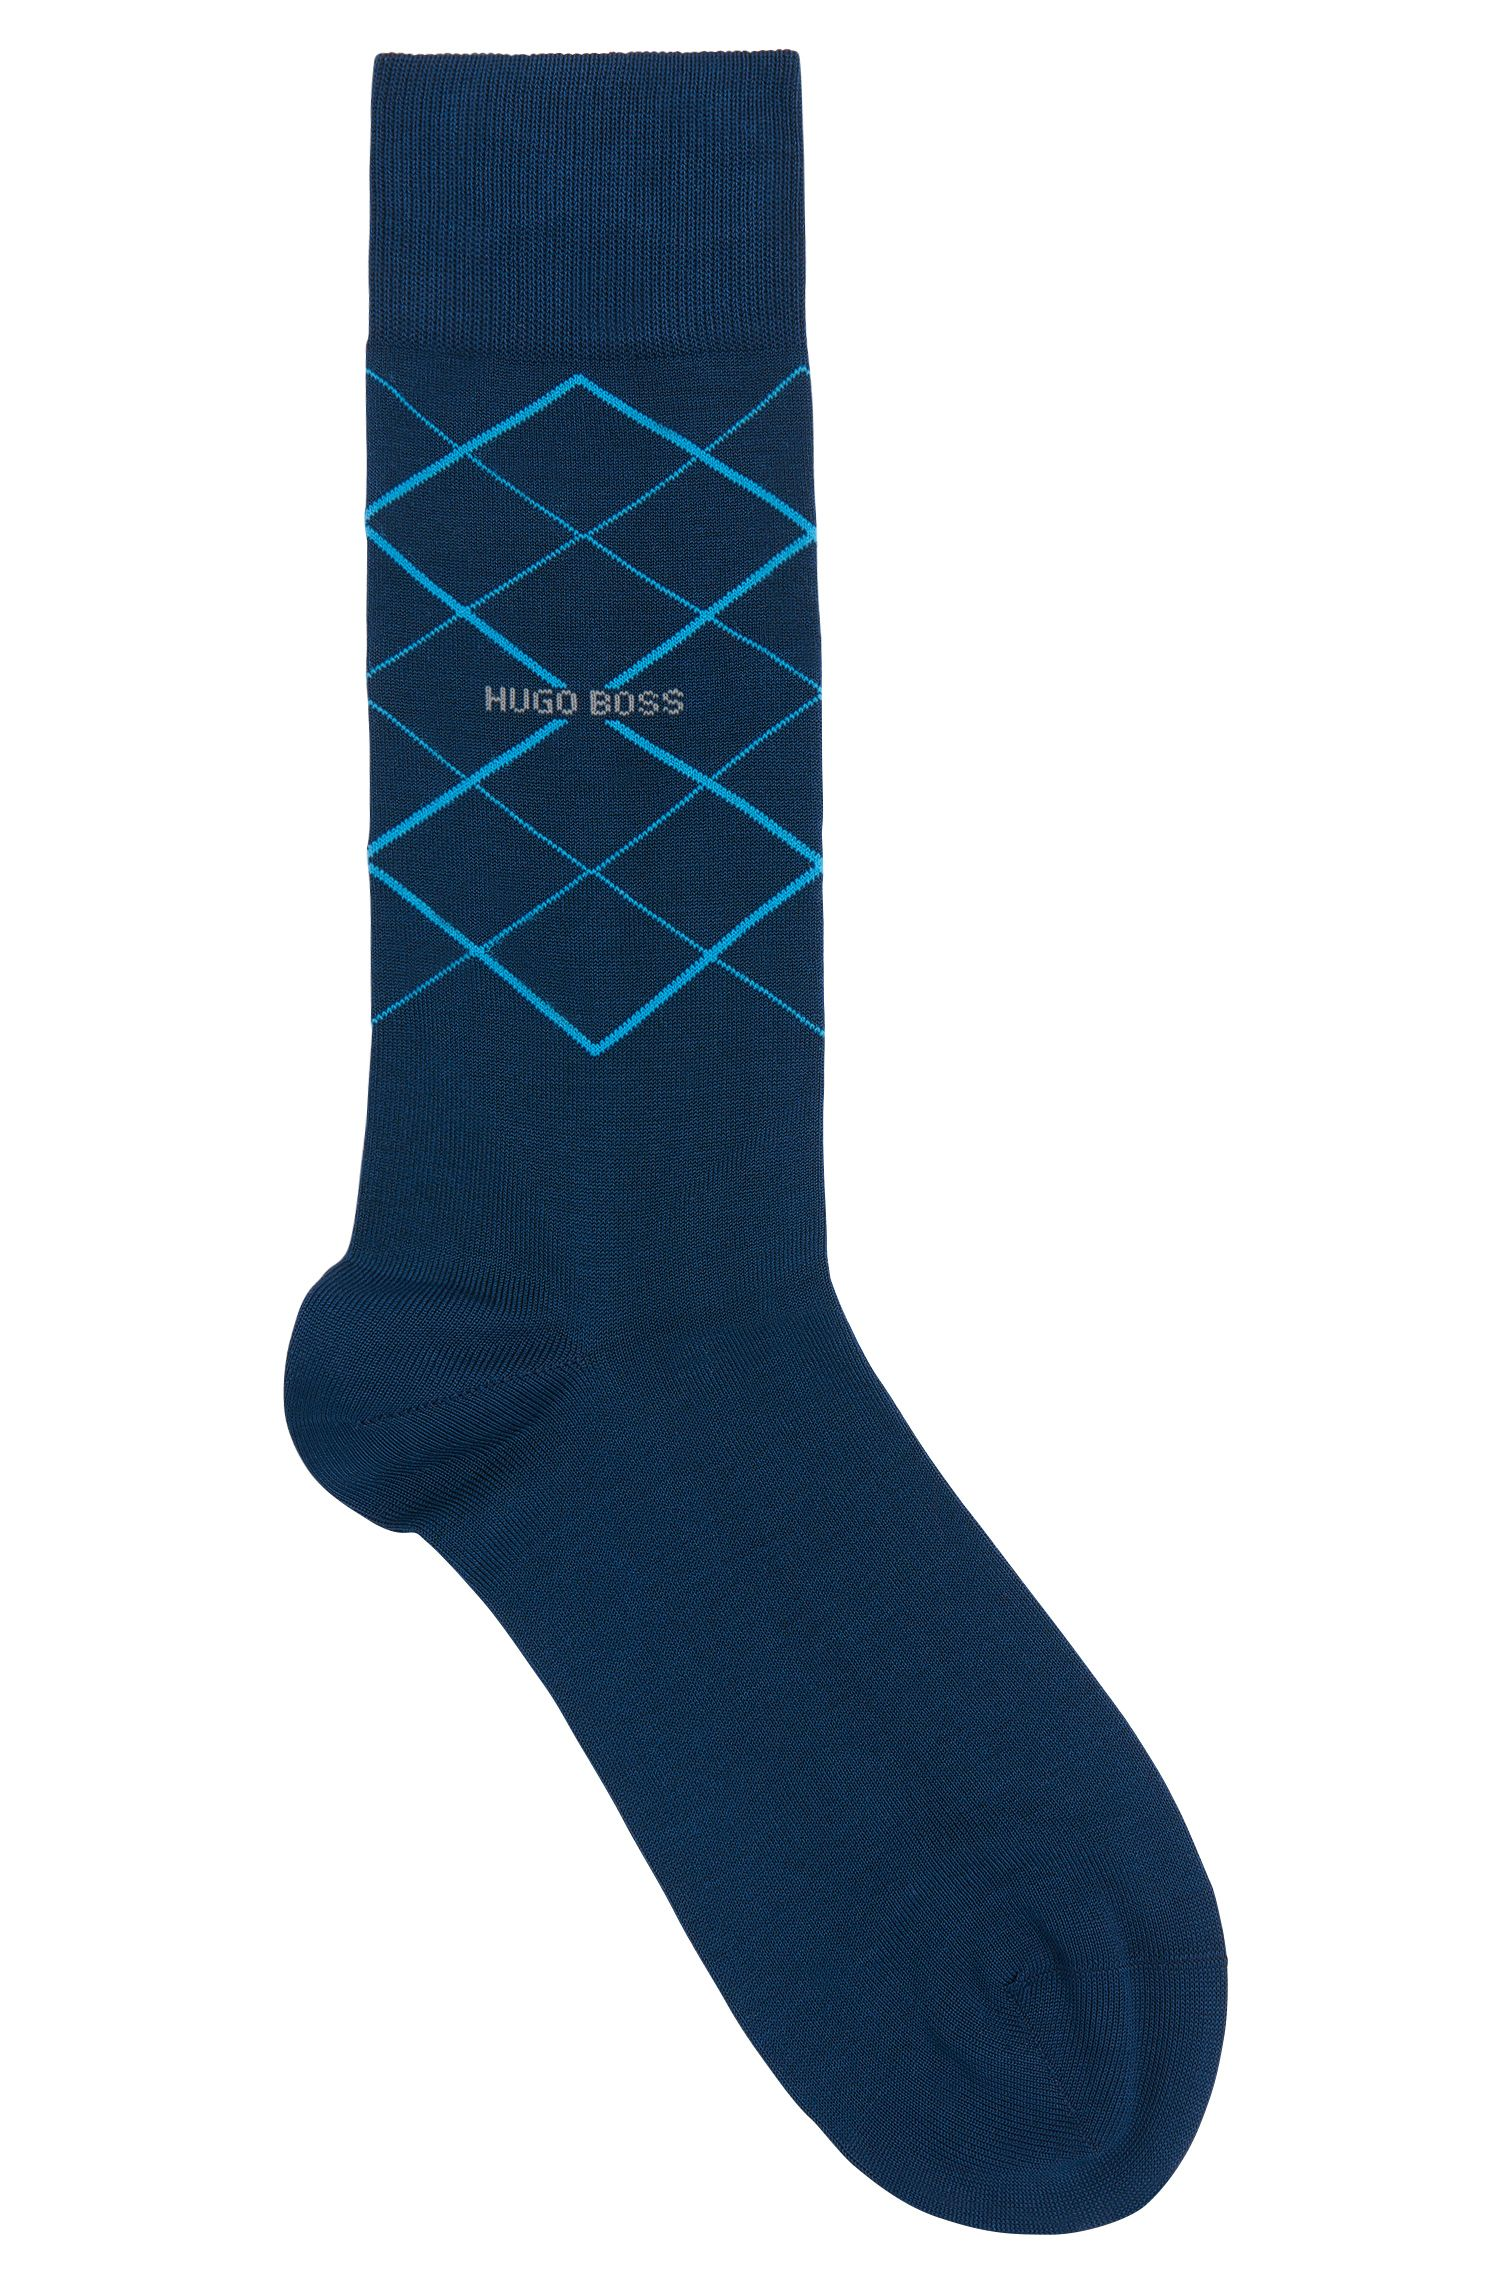 'RS Design US' | Stretch Mercerized Cotton Blend Socks